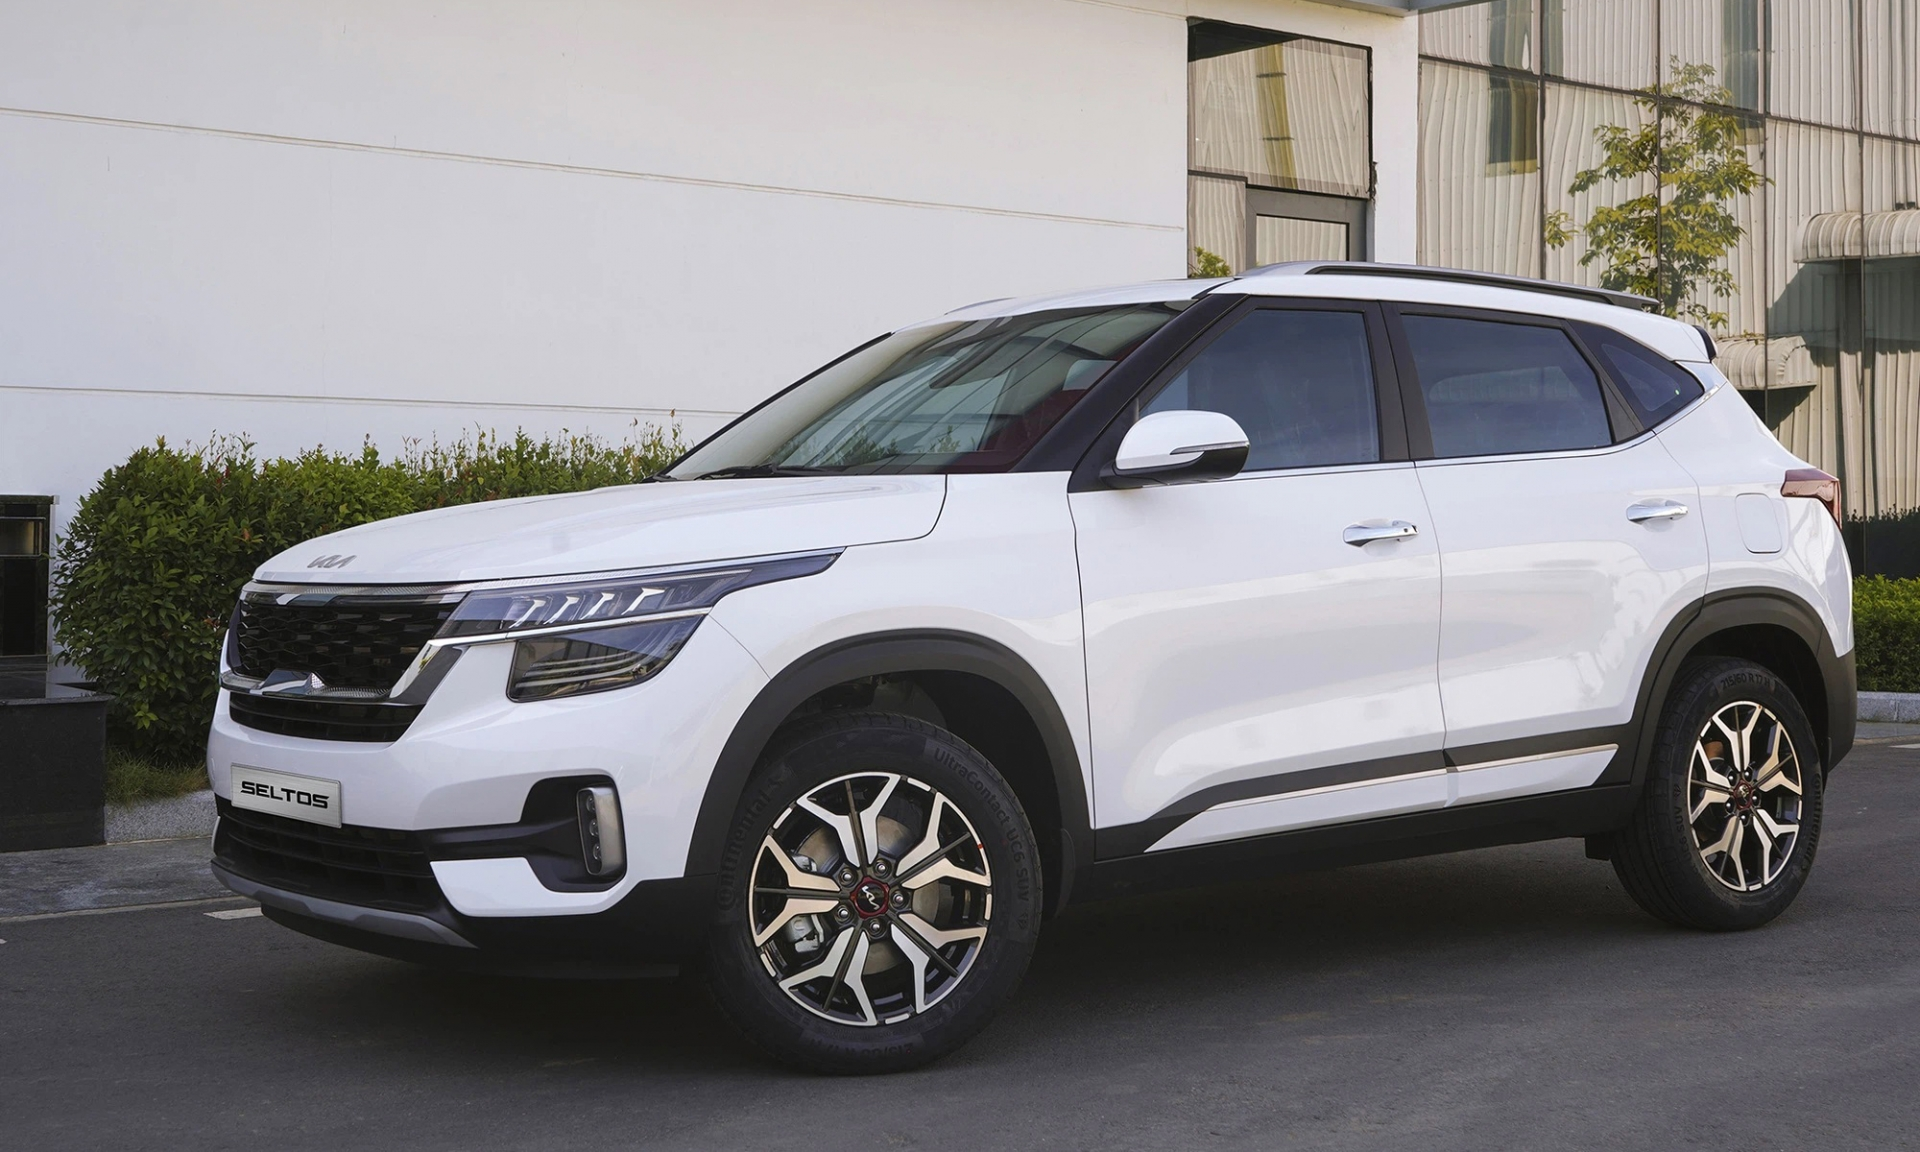 Kia Seltos suddenly adjusted its selling price for the third time in 2021 1